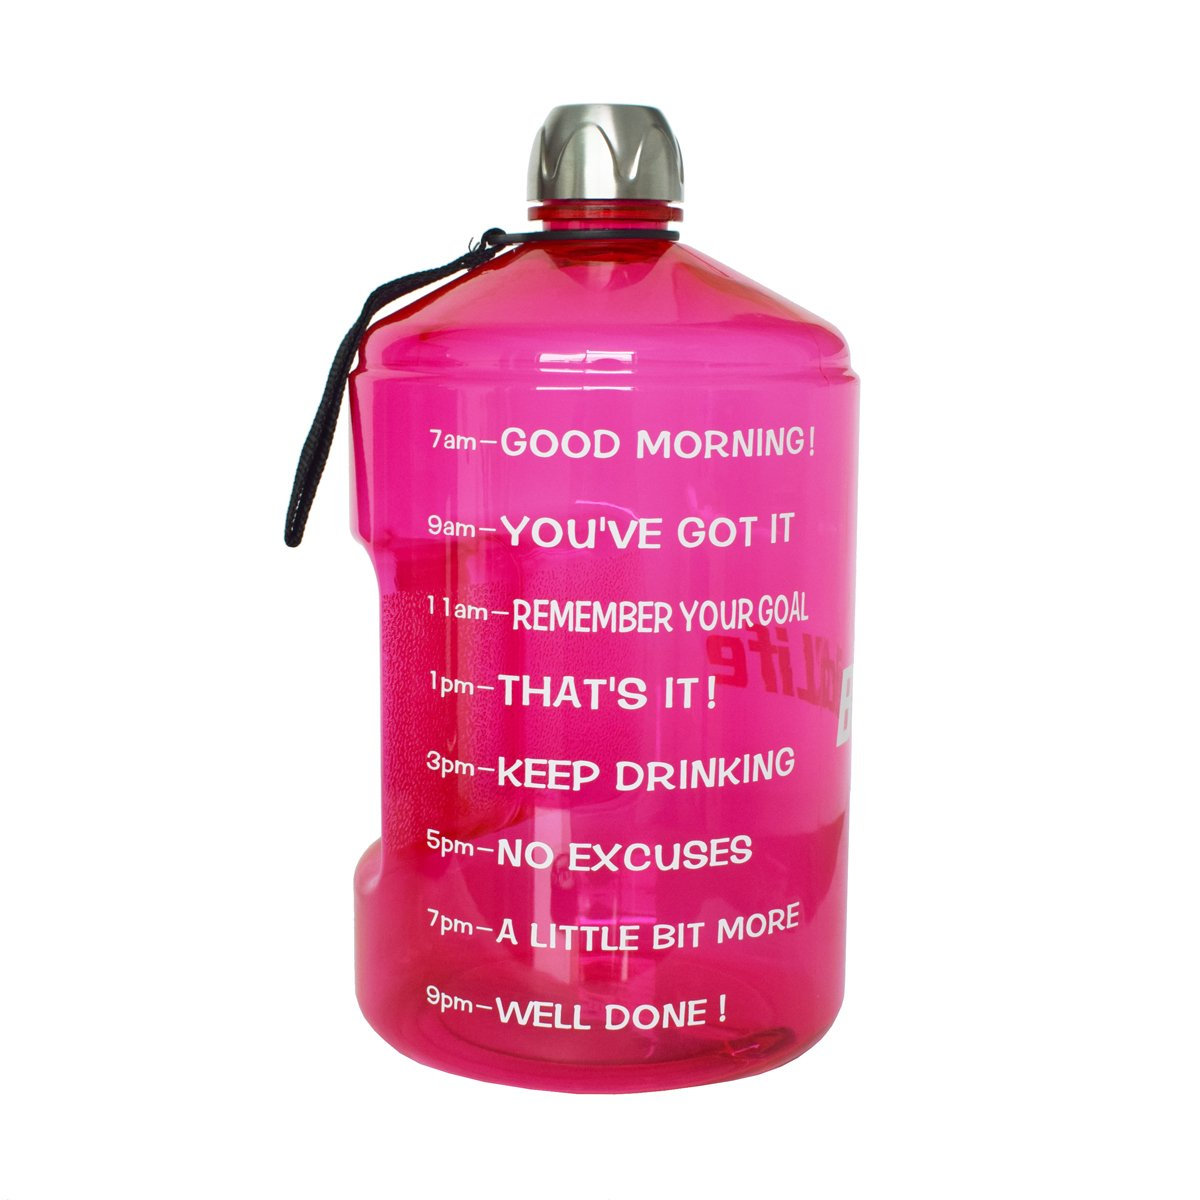 1 Gallon Hydration Bottle Daily Water Tracker-Time Marked to Ensure You Drink 128 Ounces of Water Throughout The Day. Make Sure You Stay Hydrated (Pink)